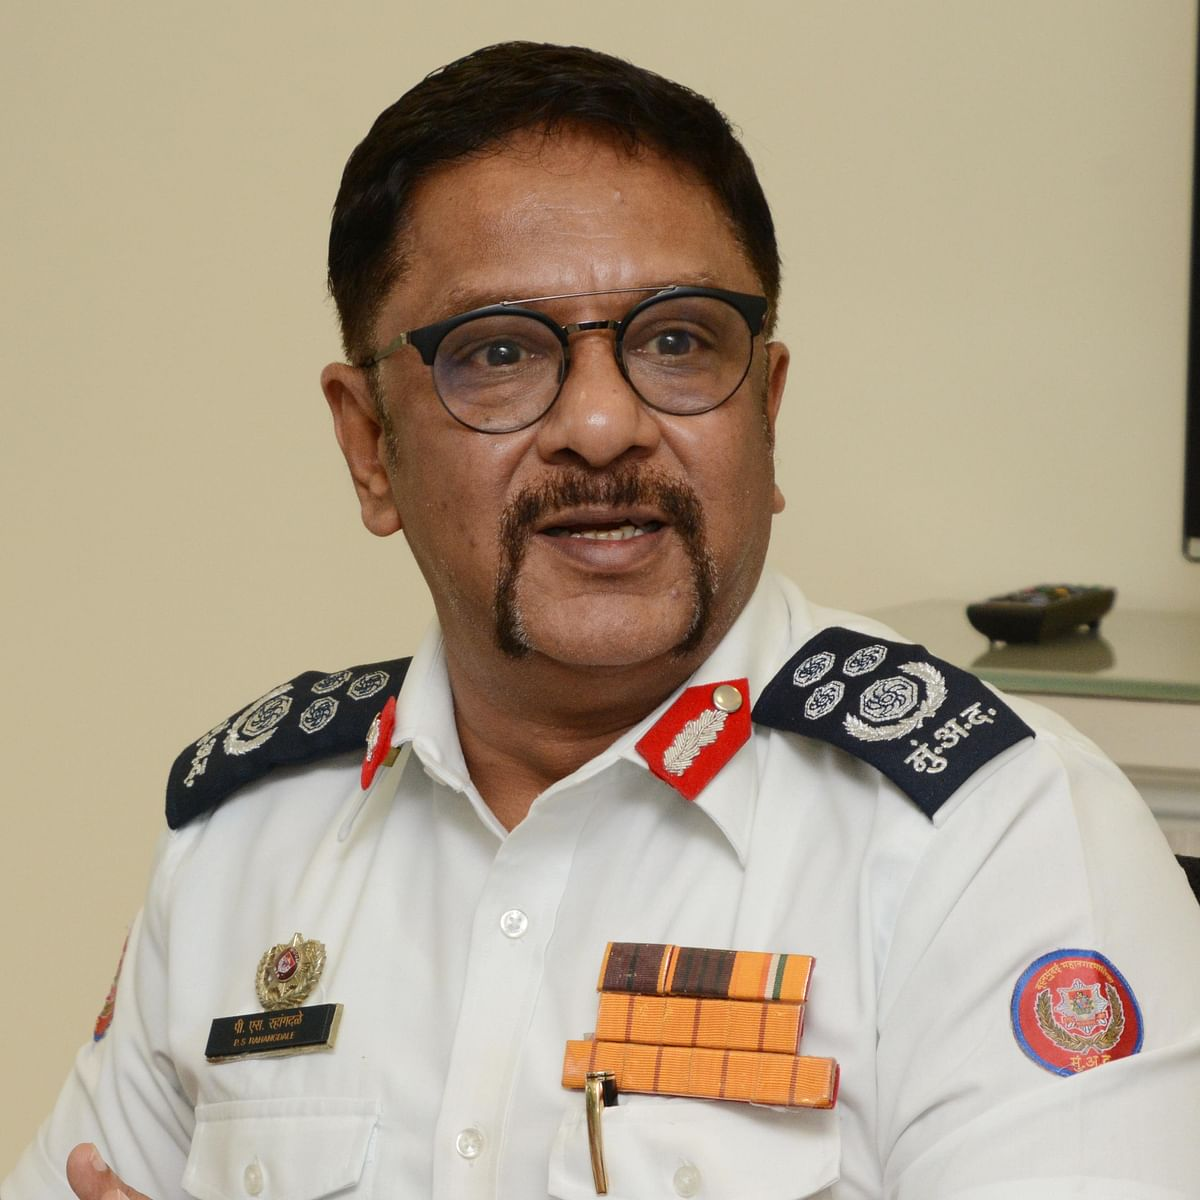 New fire safety rules must for all: CFO Prabhat Rahangdale